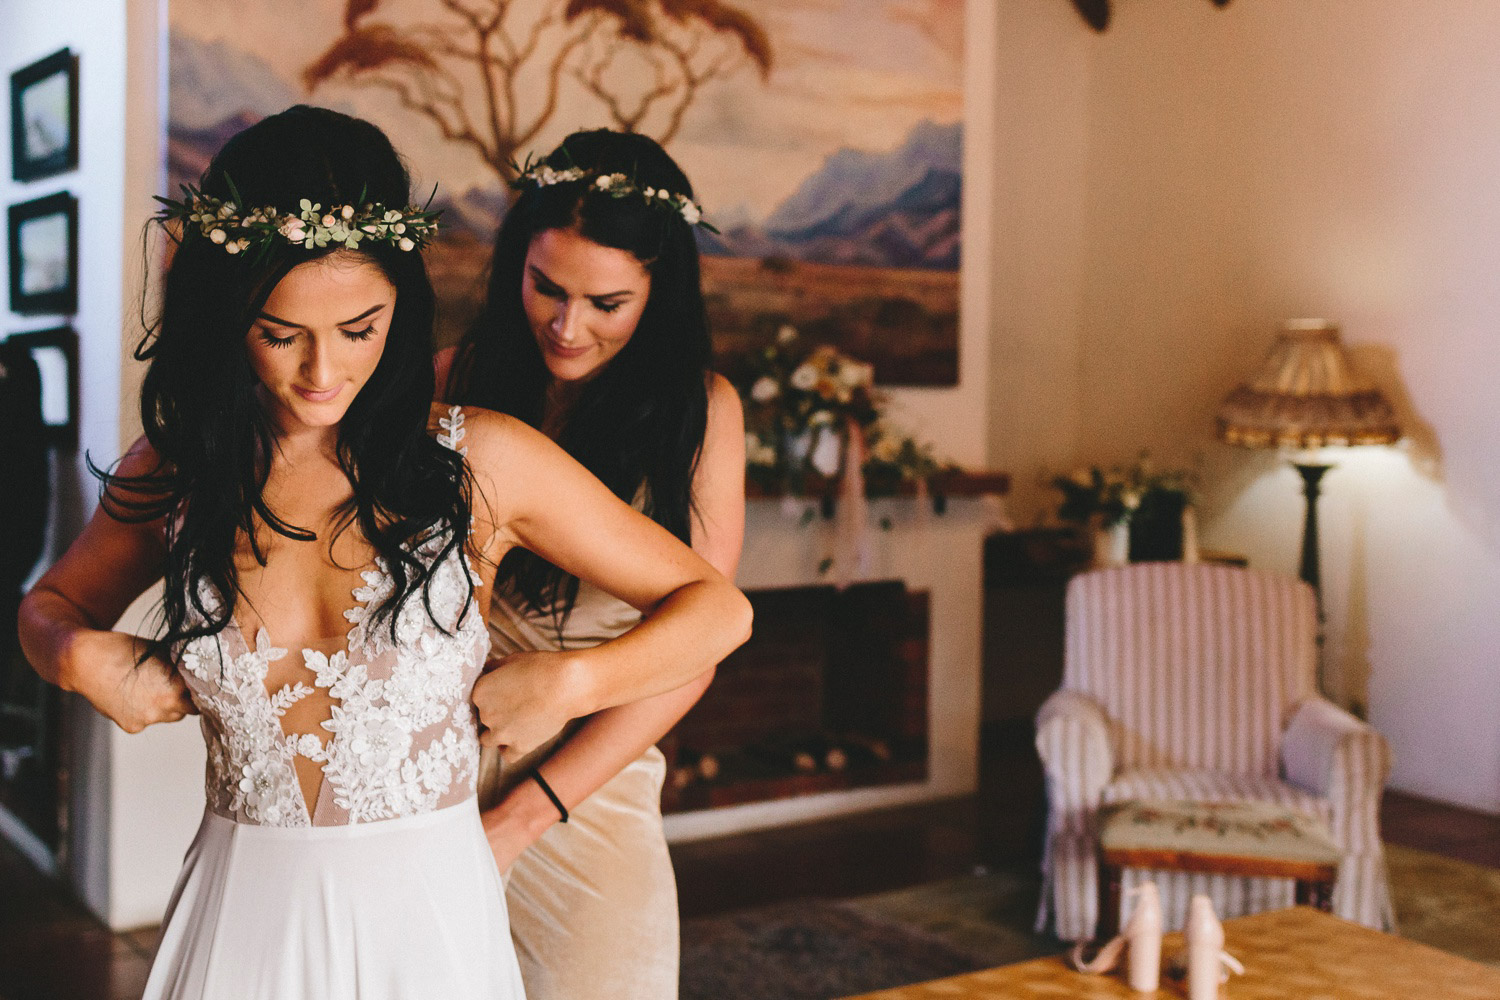 western-cape-photoghers-gen-scott-greyton-wedding-photography-charlie-ray38.jpg